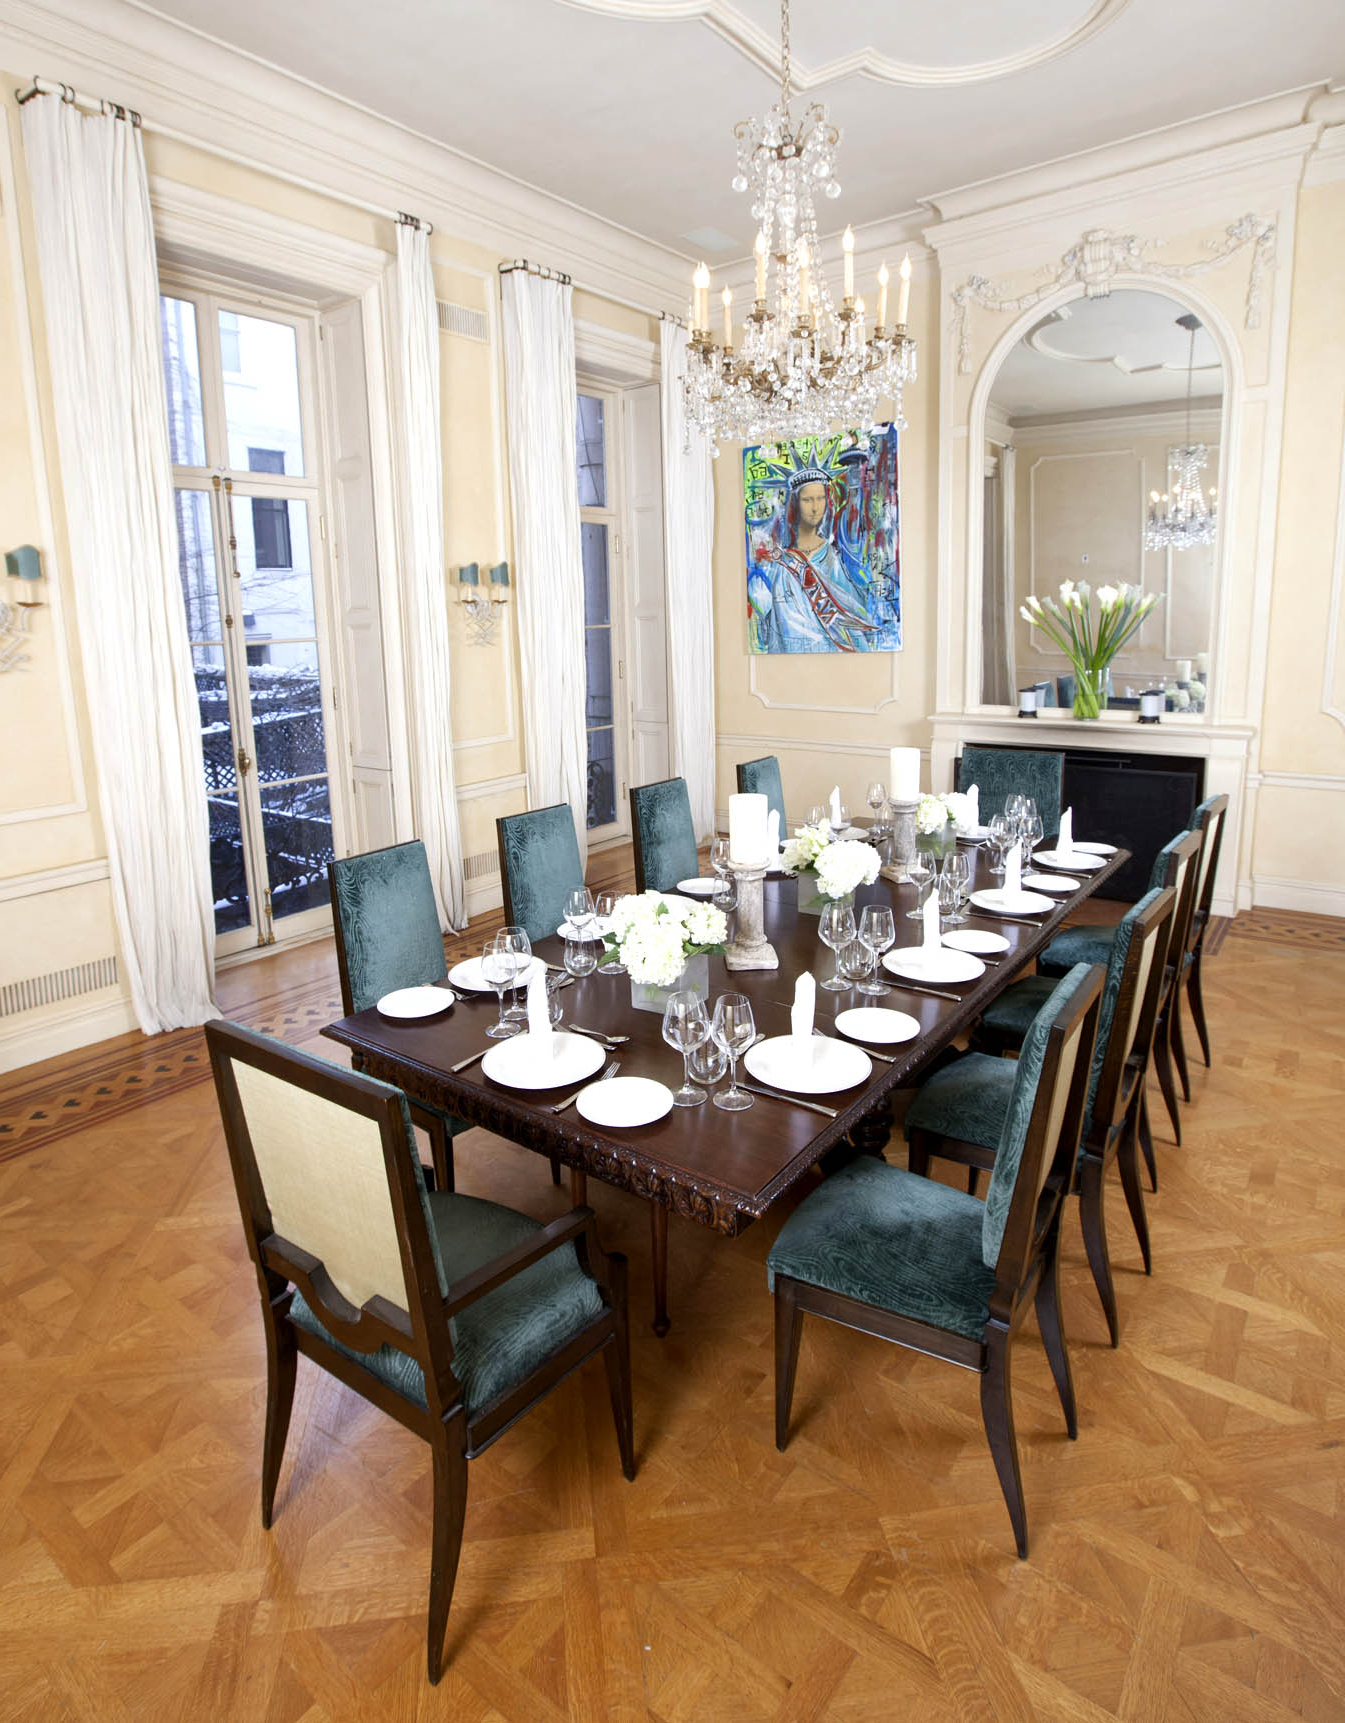 Featured Image of Deluxe Italian Dining Room For Large Interior